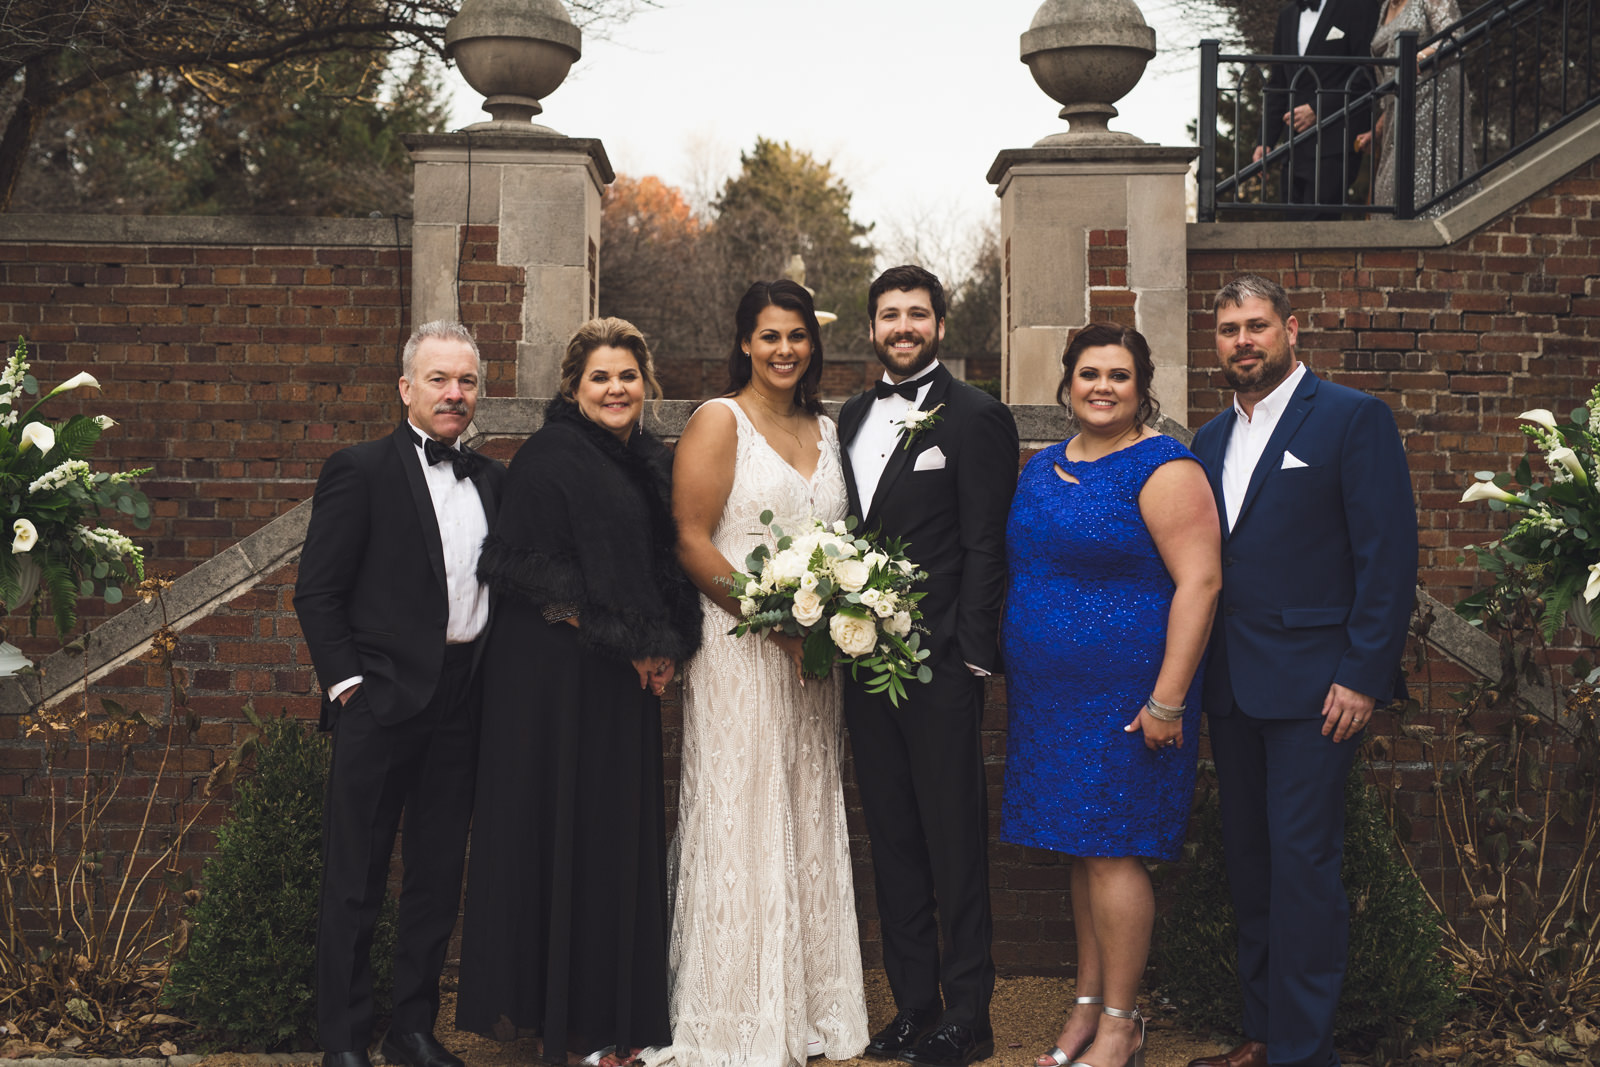 rollins-mansion-1102-wedding-photographer-des-moines-iowa-m-c.jpg